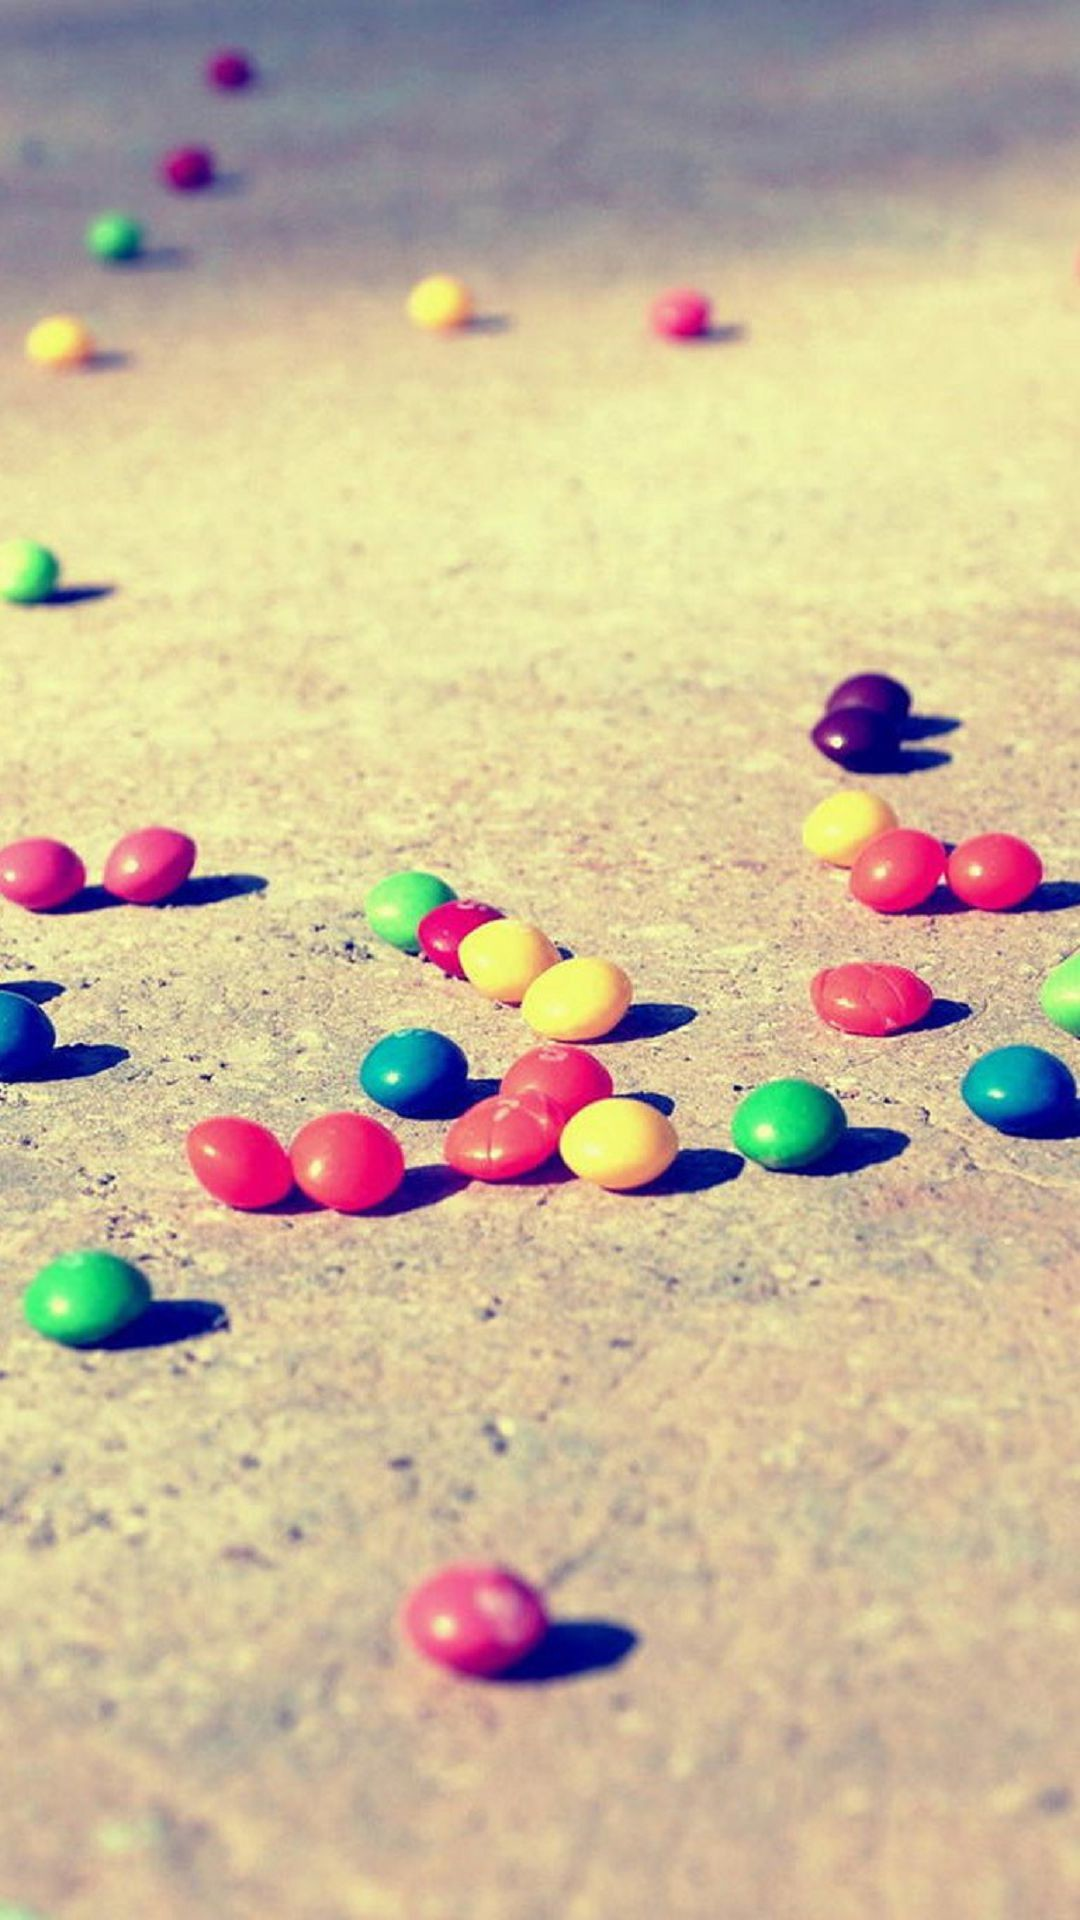 1080x1920 Blurred Candies on the Ground Colorful M&M's. Wallpapers ...